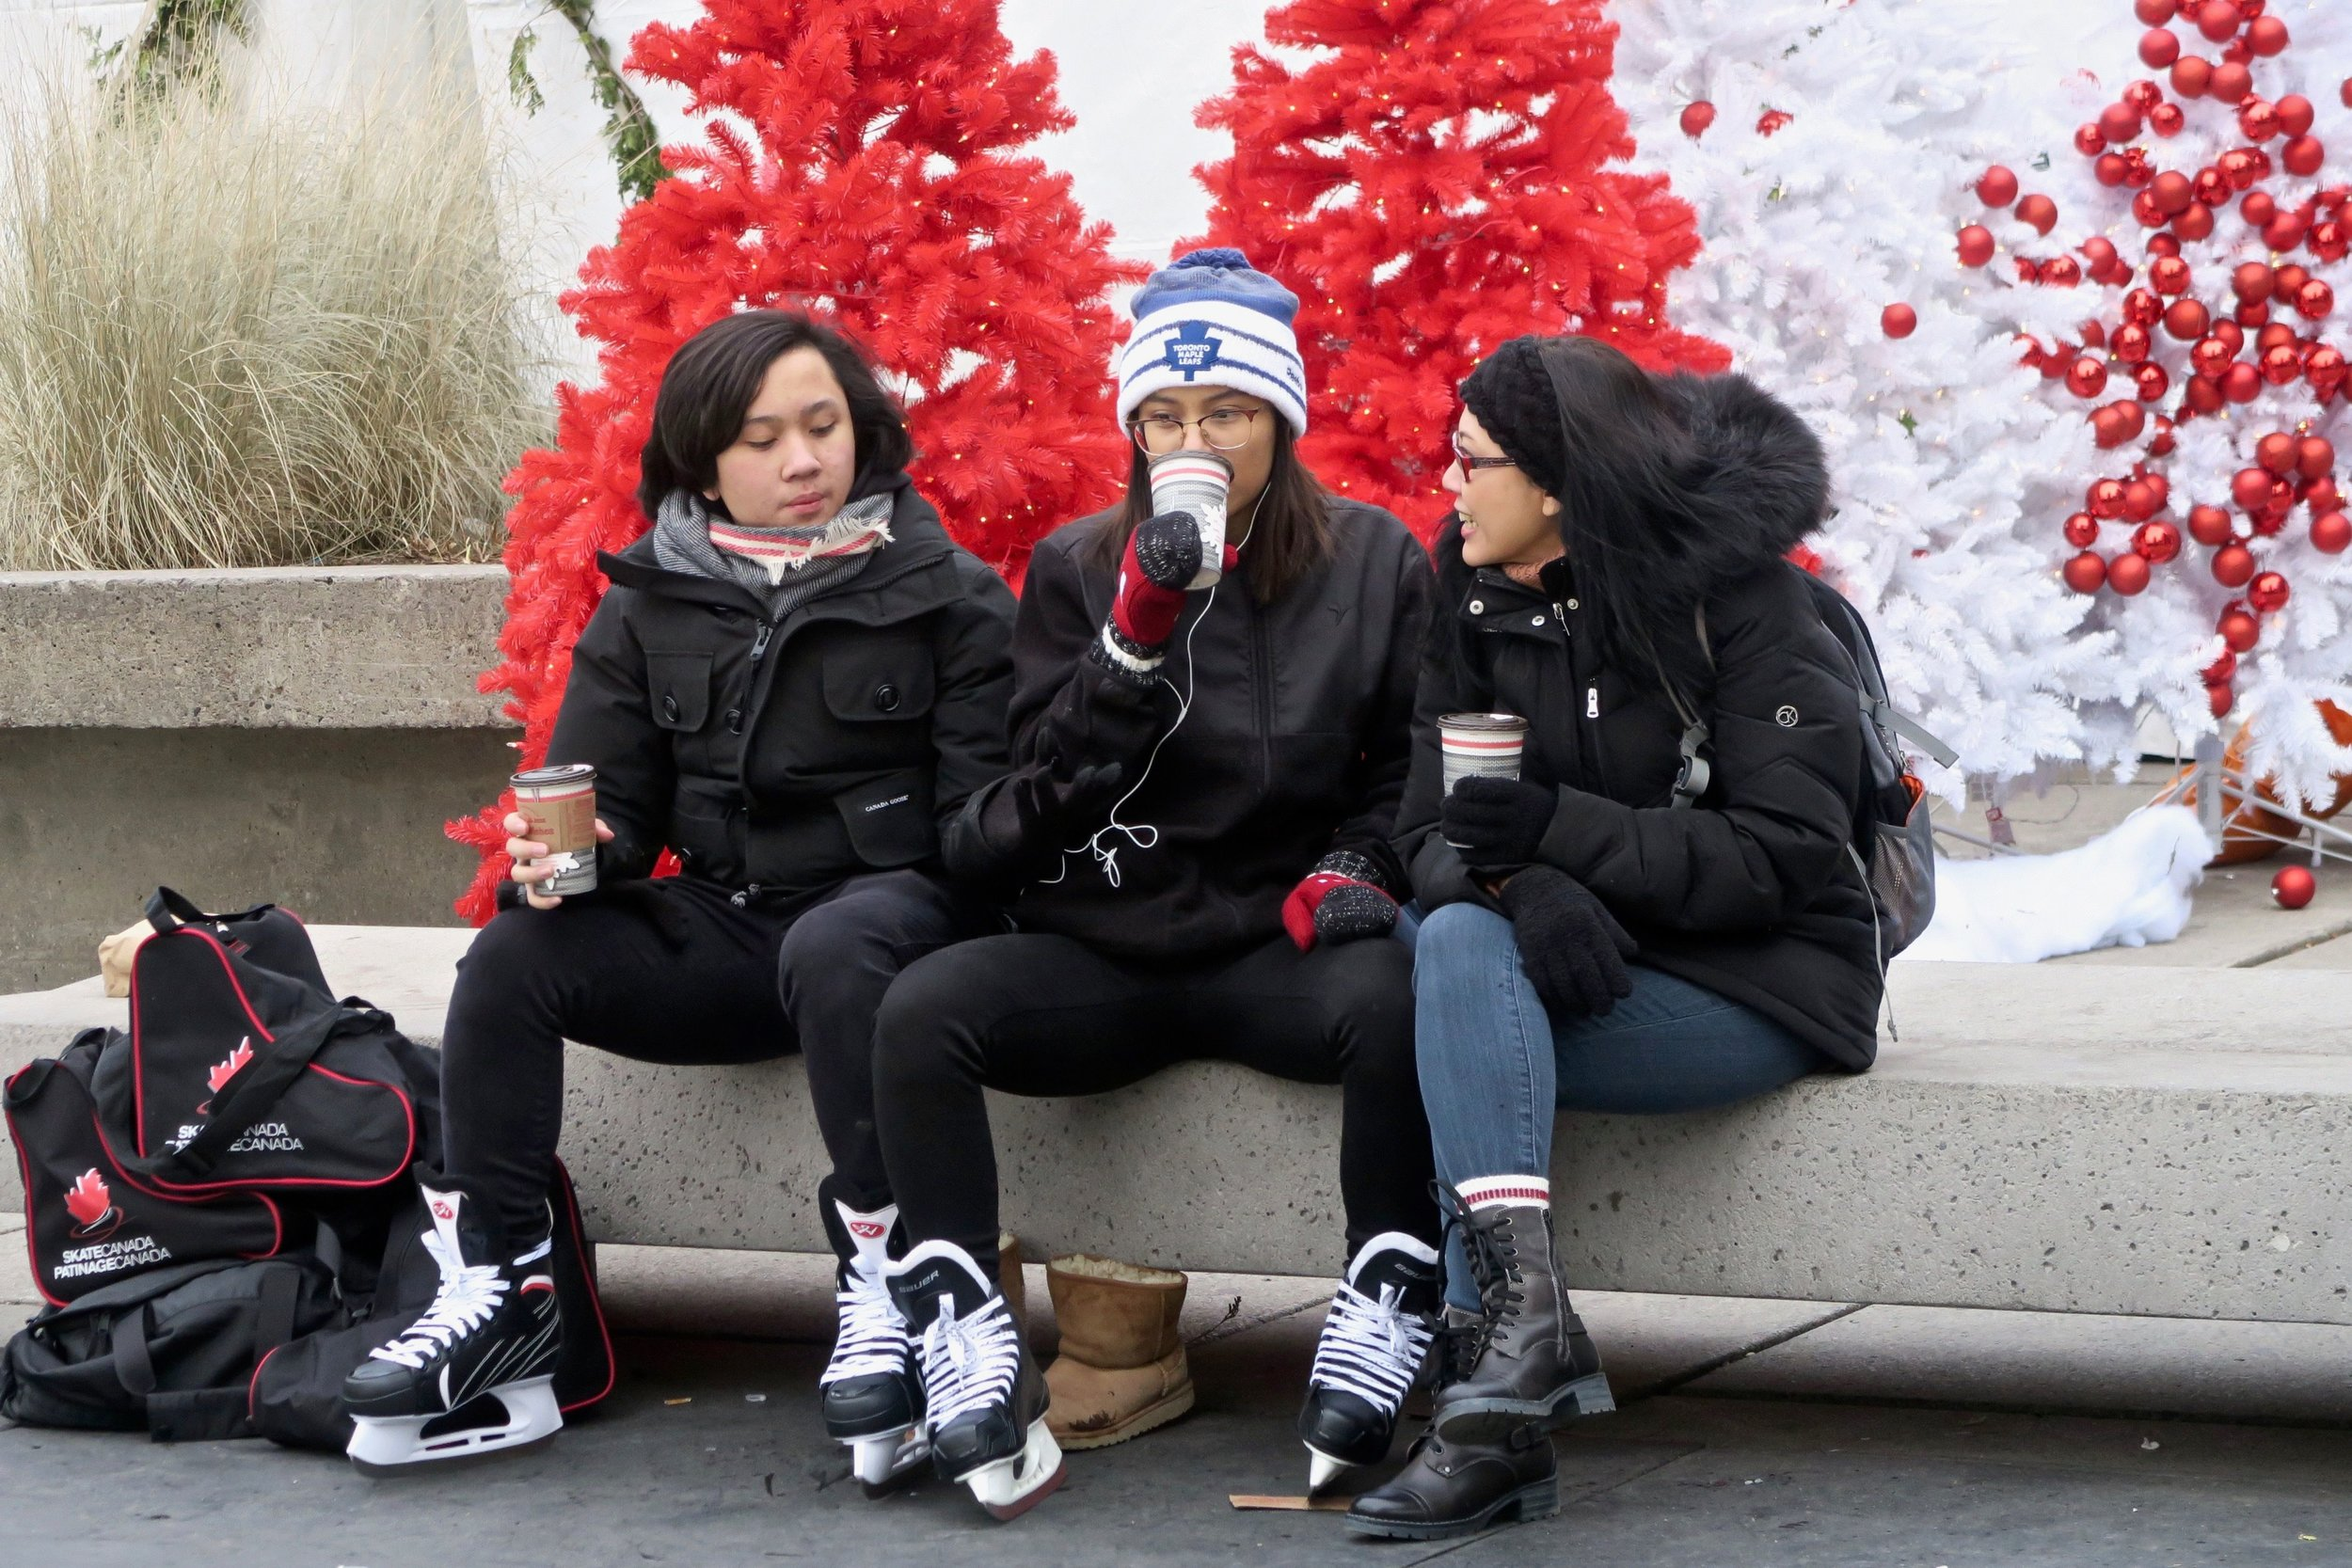 After your skate, enjoy a hot chocolate, mulled wine or hot mulled apple cider with us at the Fair!